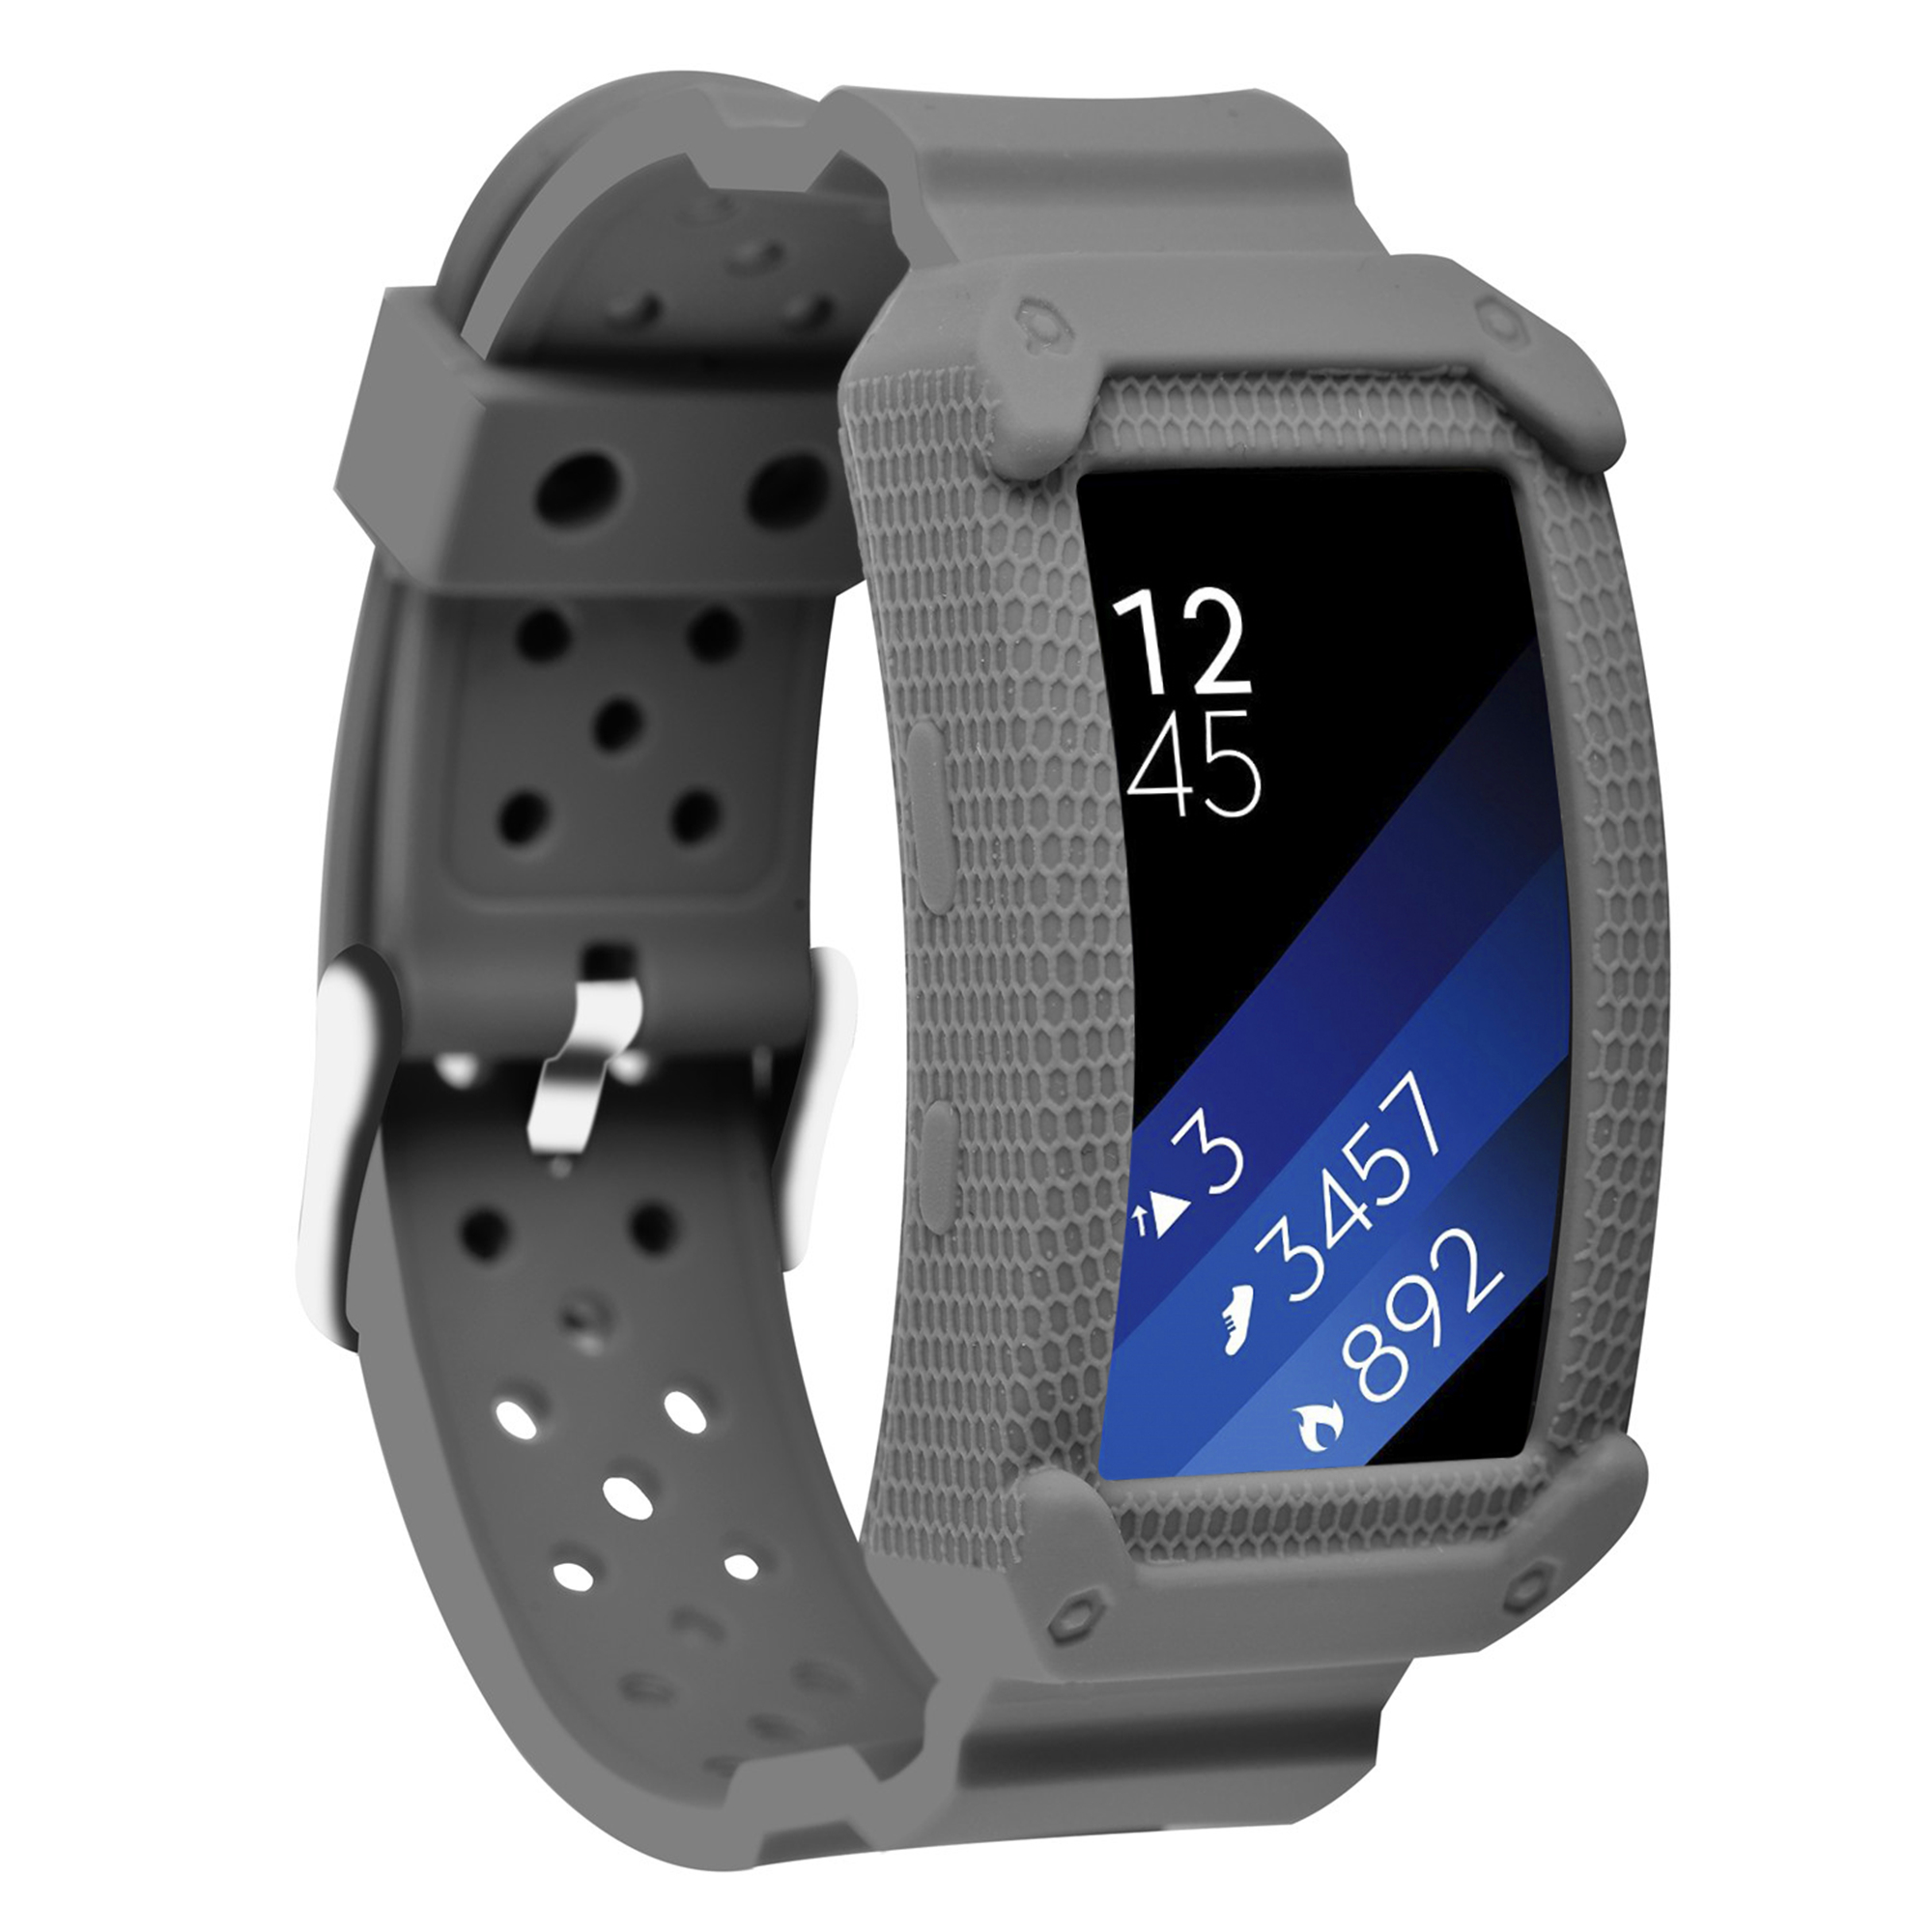 Moretek Gear Fit2&Fit 2 Pro bands , Frame Rugged Protective Case with Strap Bands for Samsung Gear fit 2 fit 2 pro Smartwatch(New Grey)